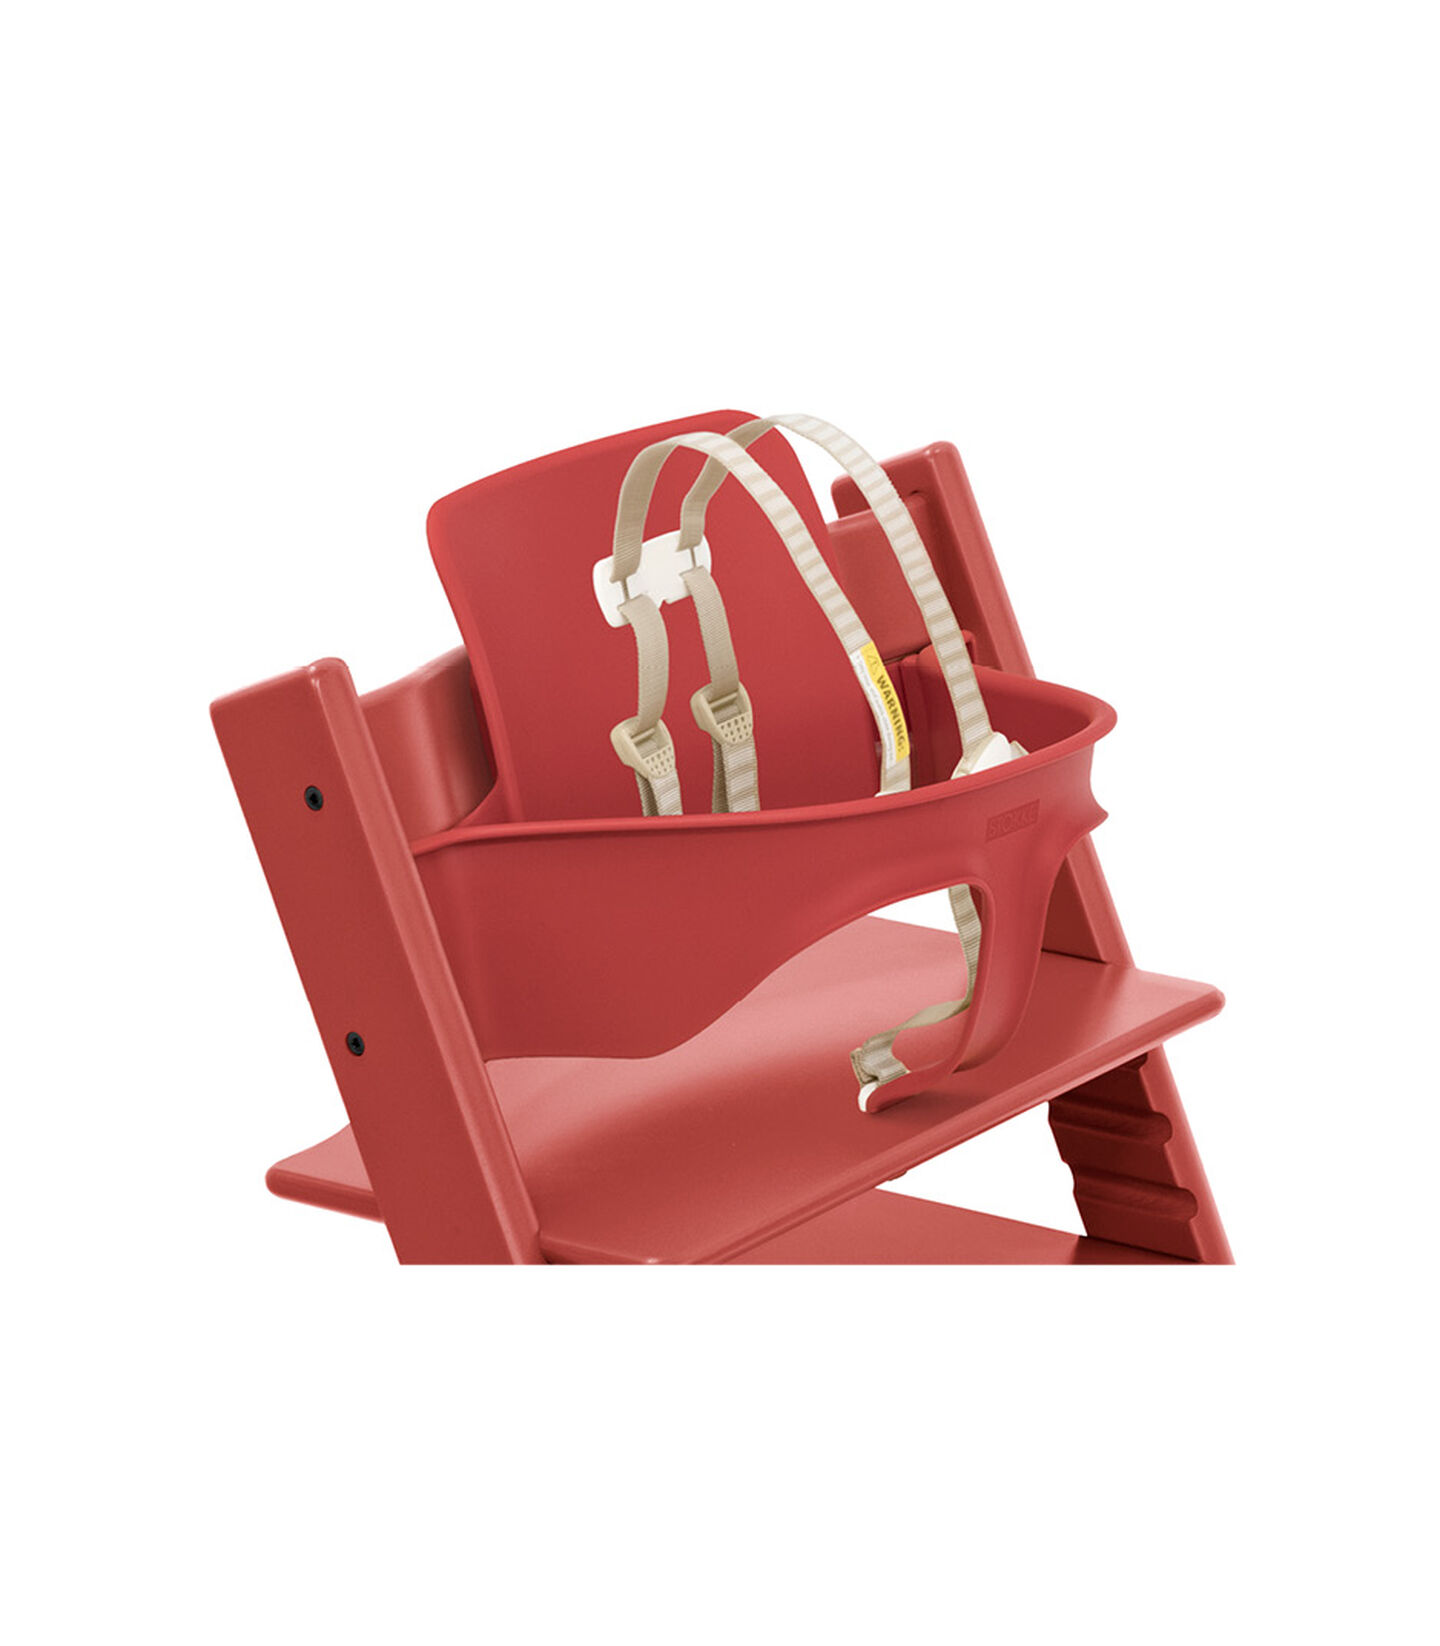 Tripp Trapp® Baby Set Warm Red, Warm Red, mainview